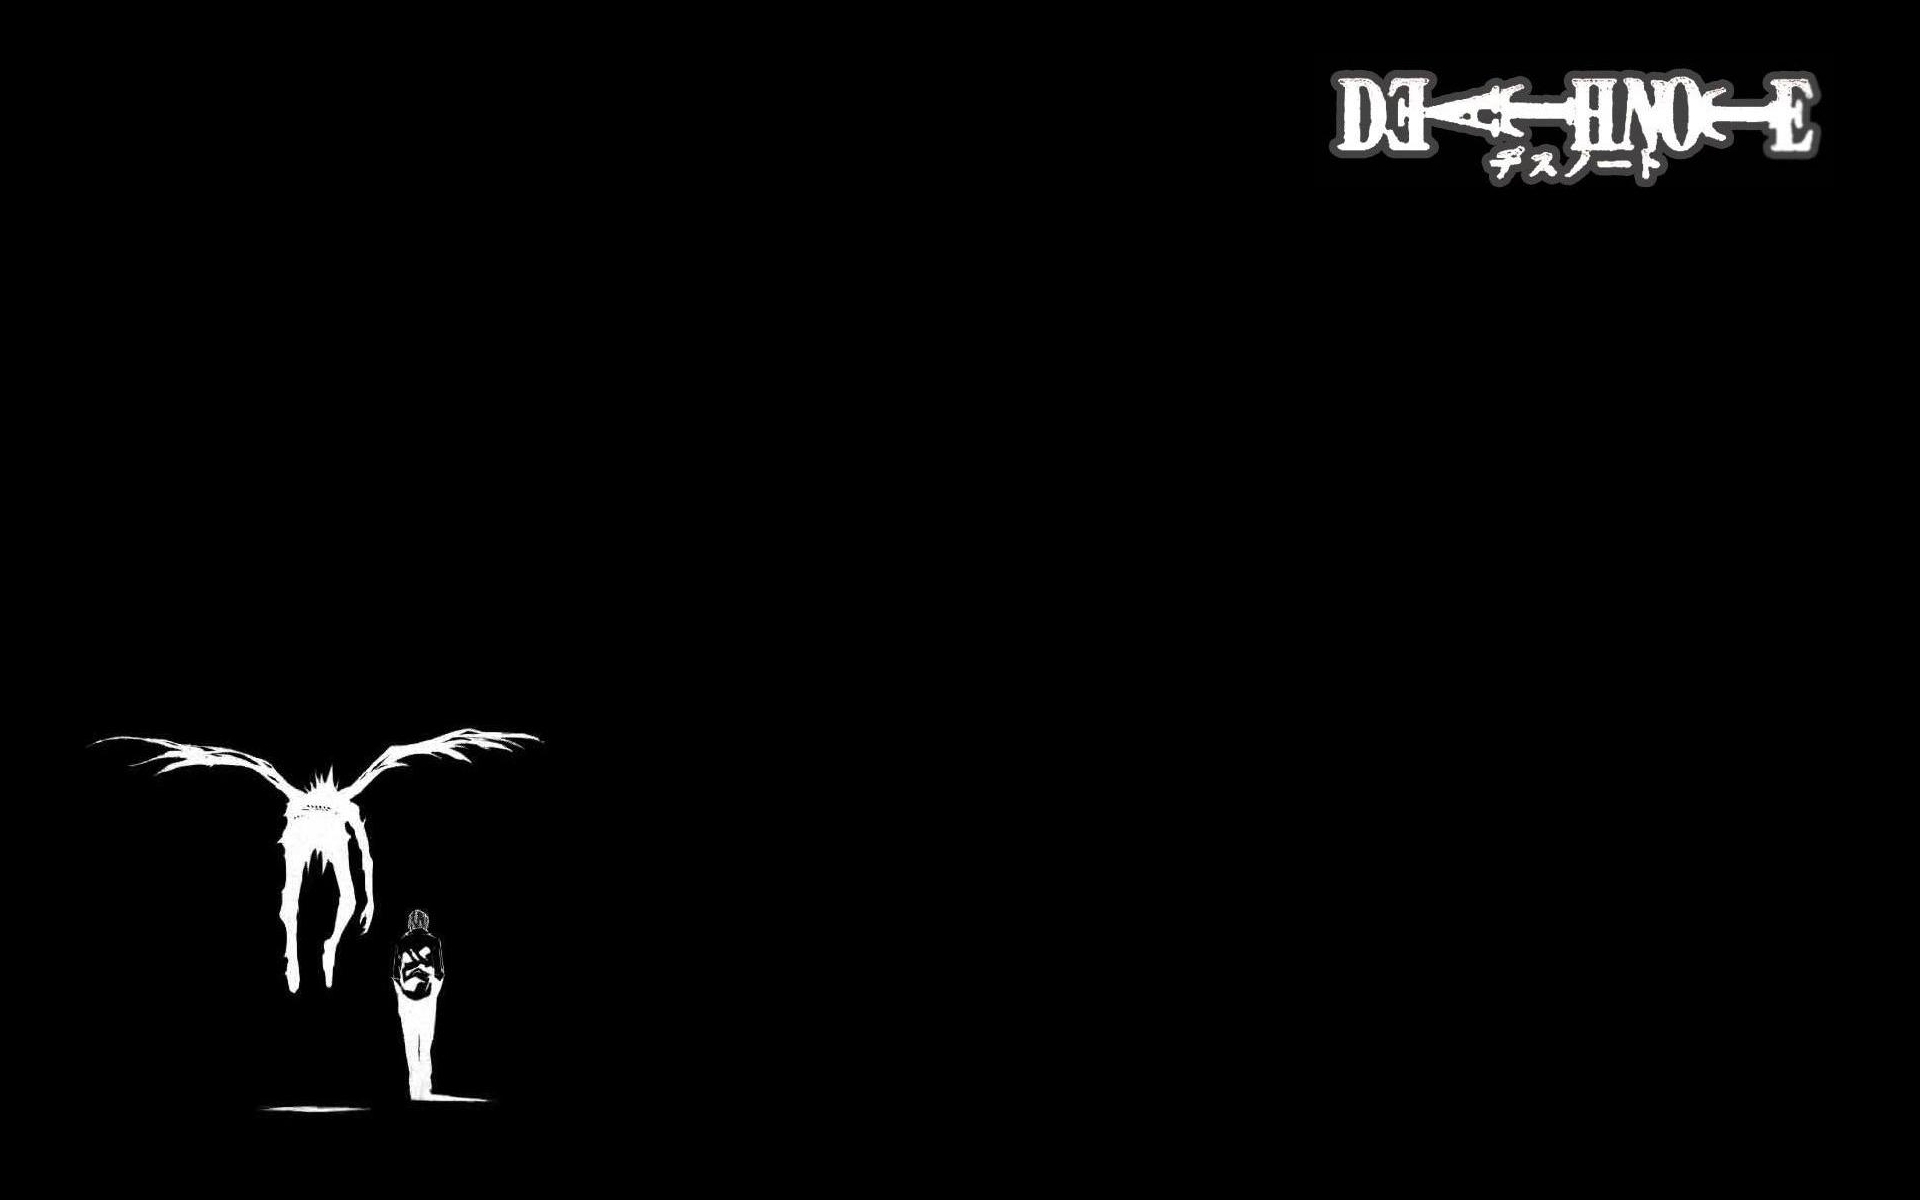 Death Note HD Wallpapers  Backgrounds  Wallpaper  1920x1200